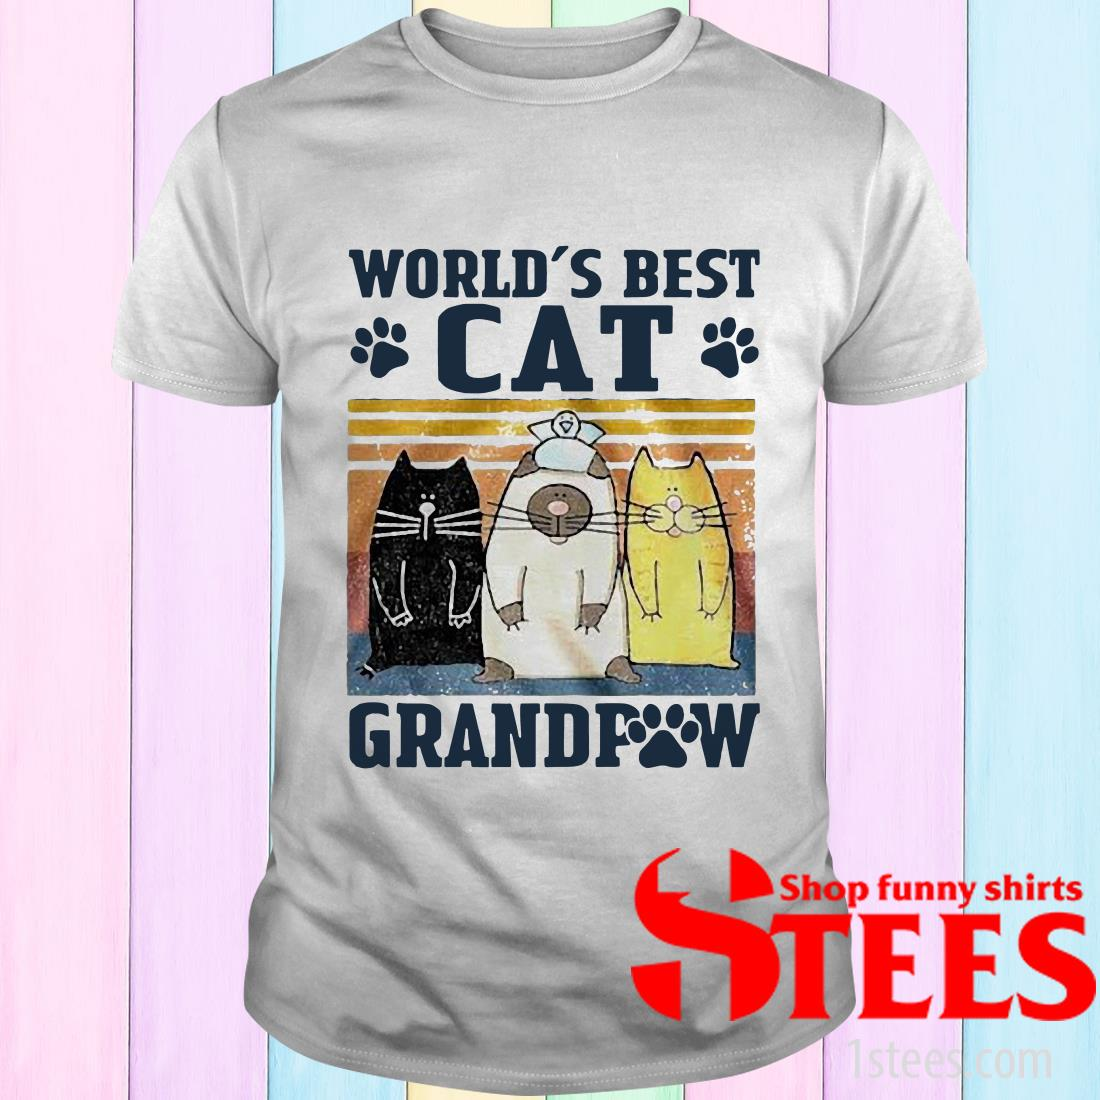 World's Best Cat Grandpaw Vintage T-Shirt